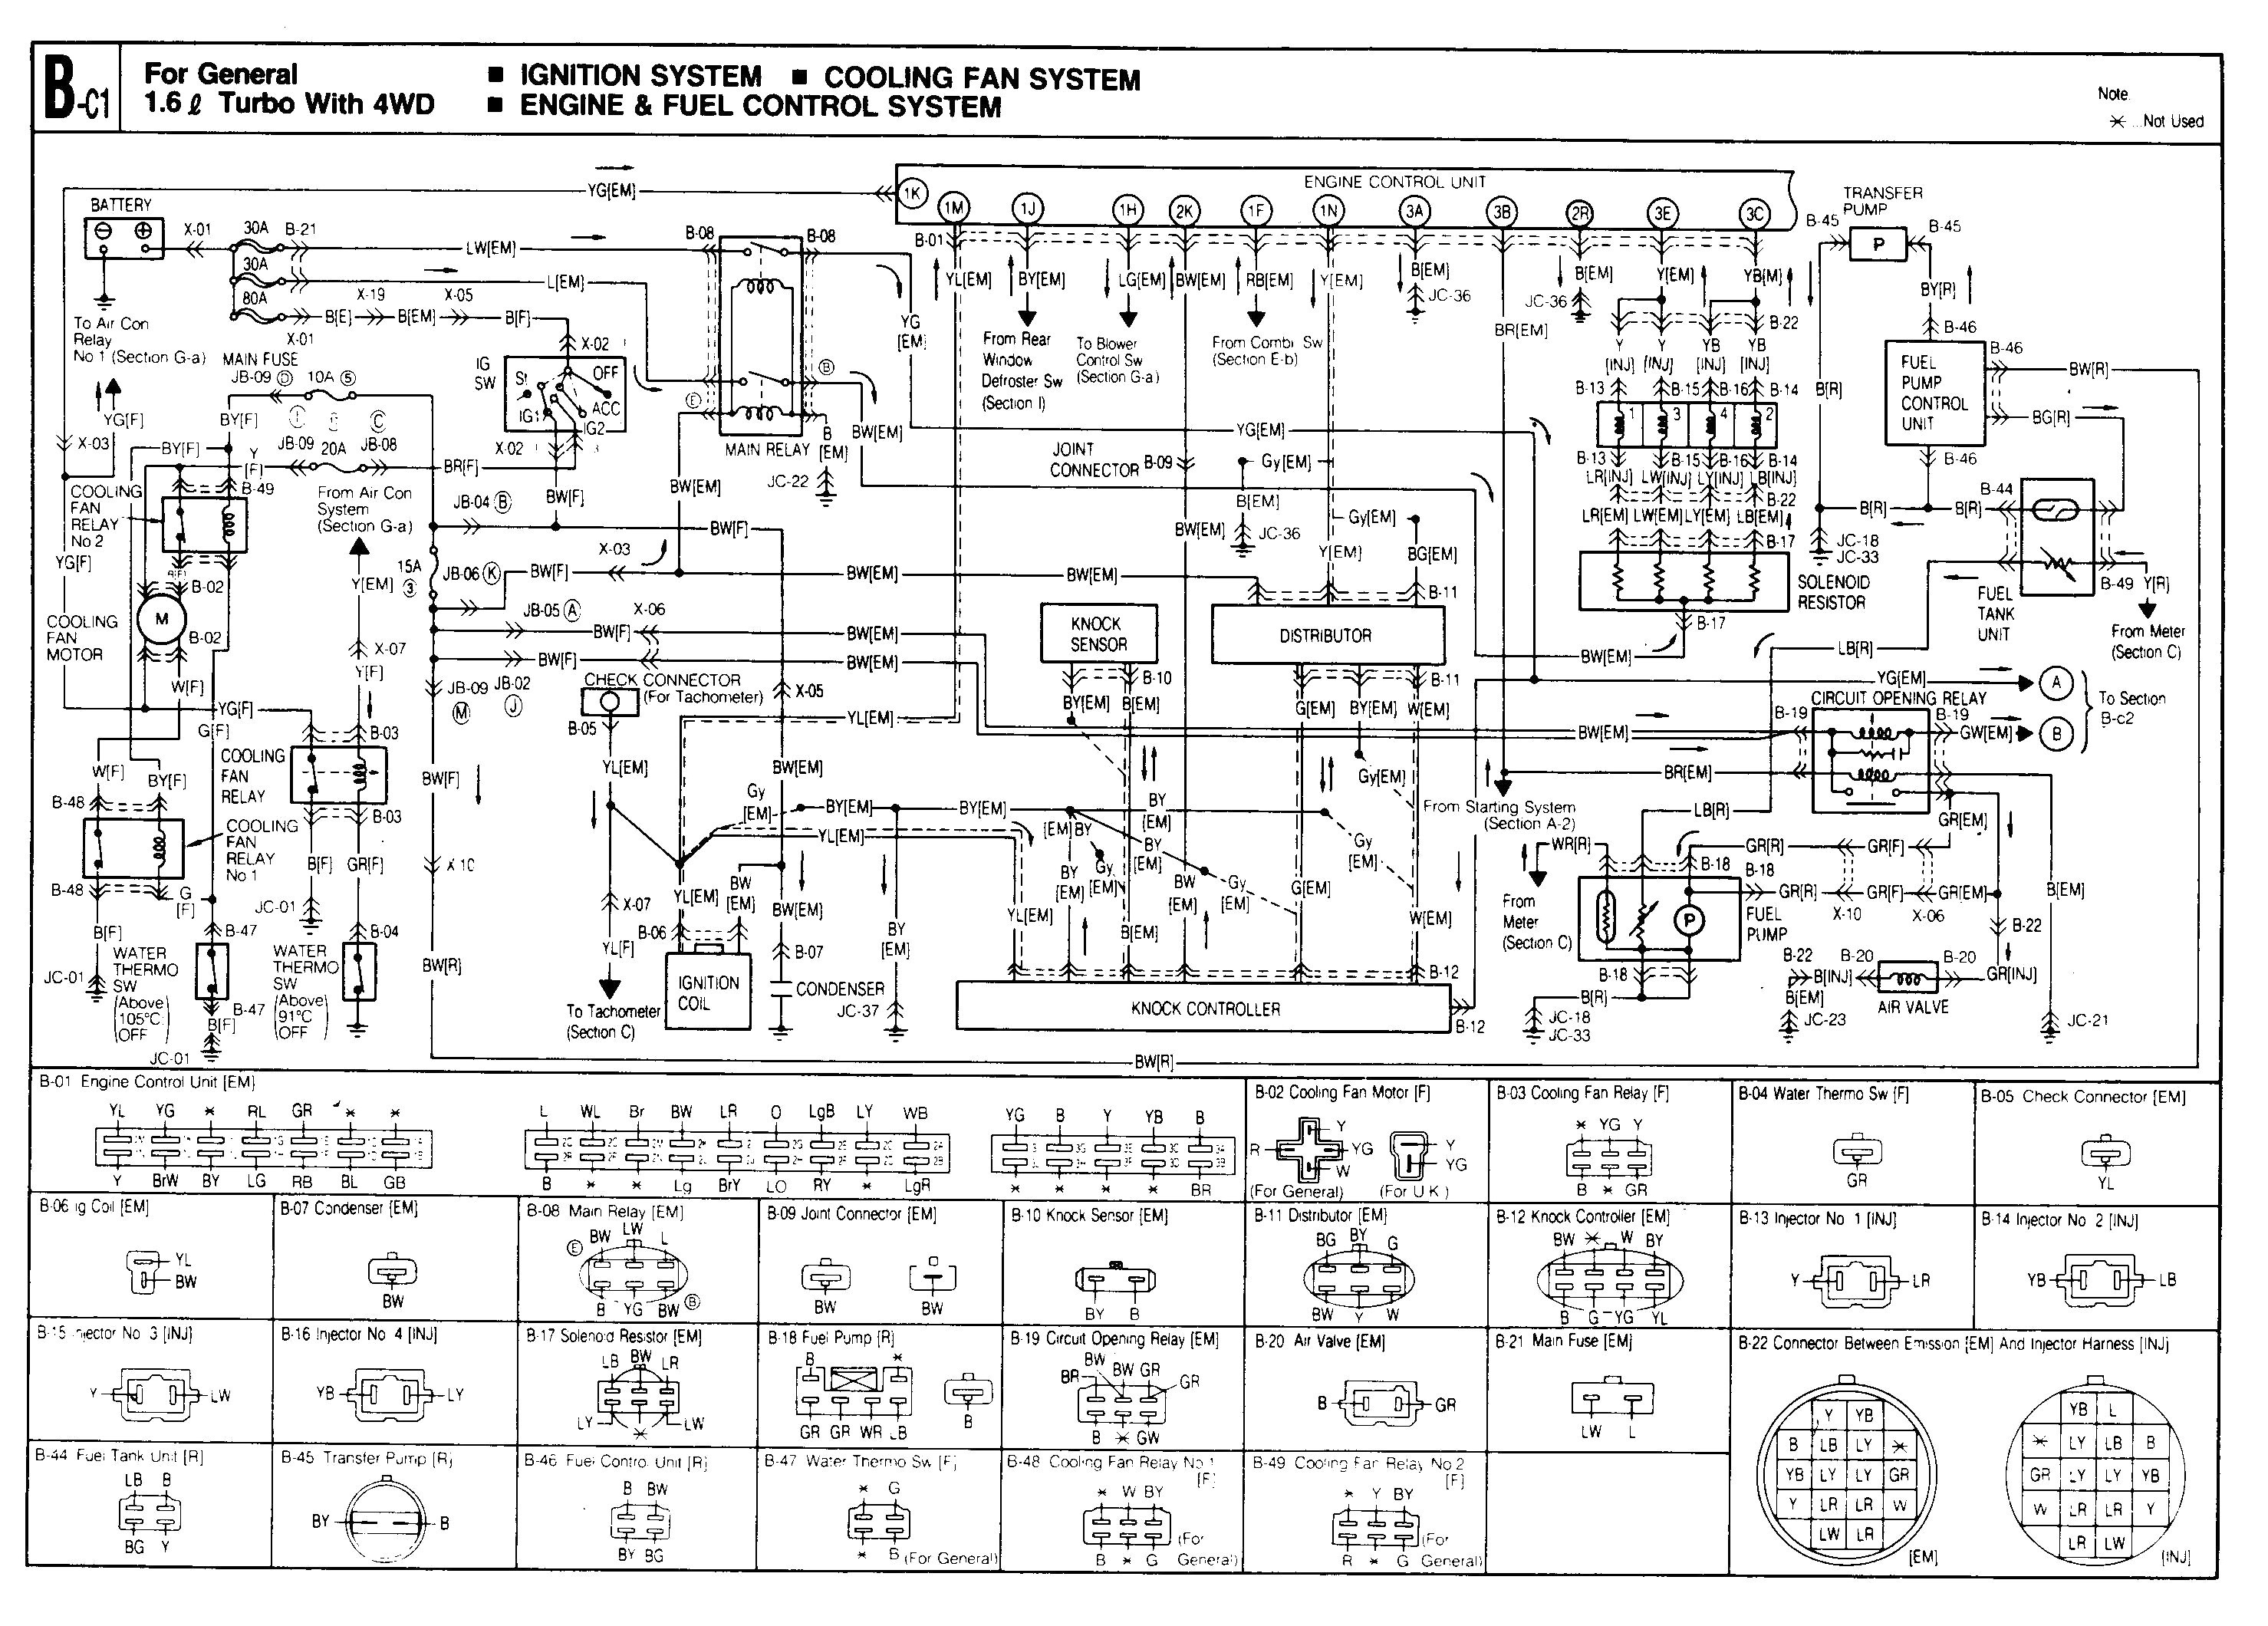 1996 mazda mpv wiring diagram car wiring diagrams explained u2022 rh  justinmyers co mazda mpv 1997 wiring diagram mazda mpv 1997 wiring diagram